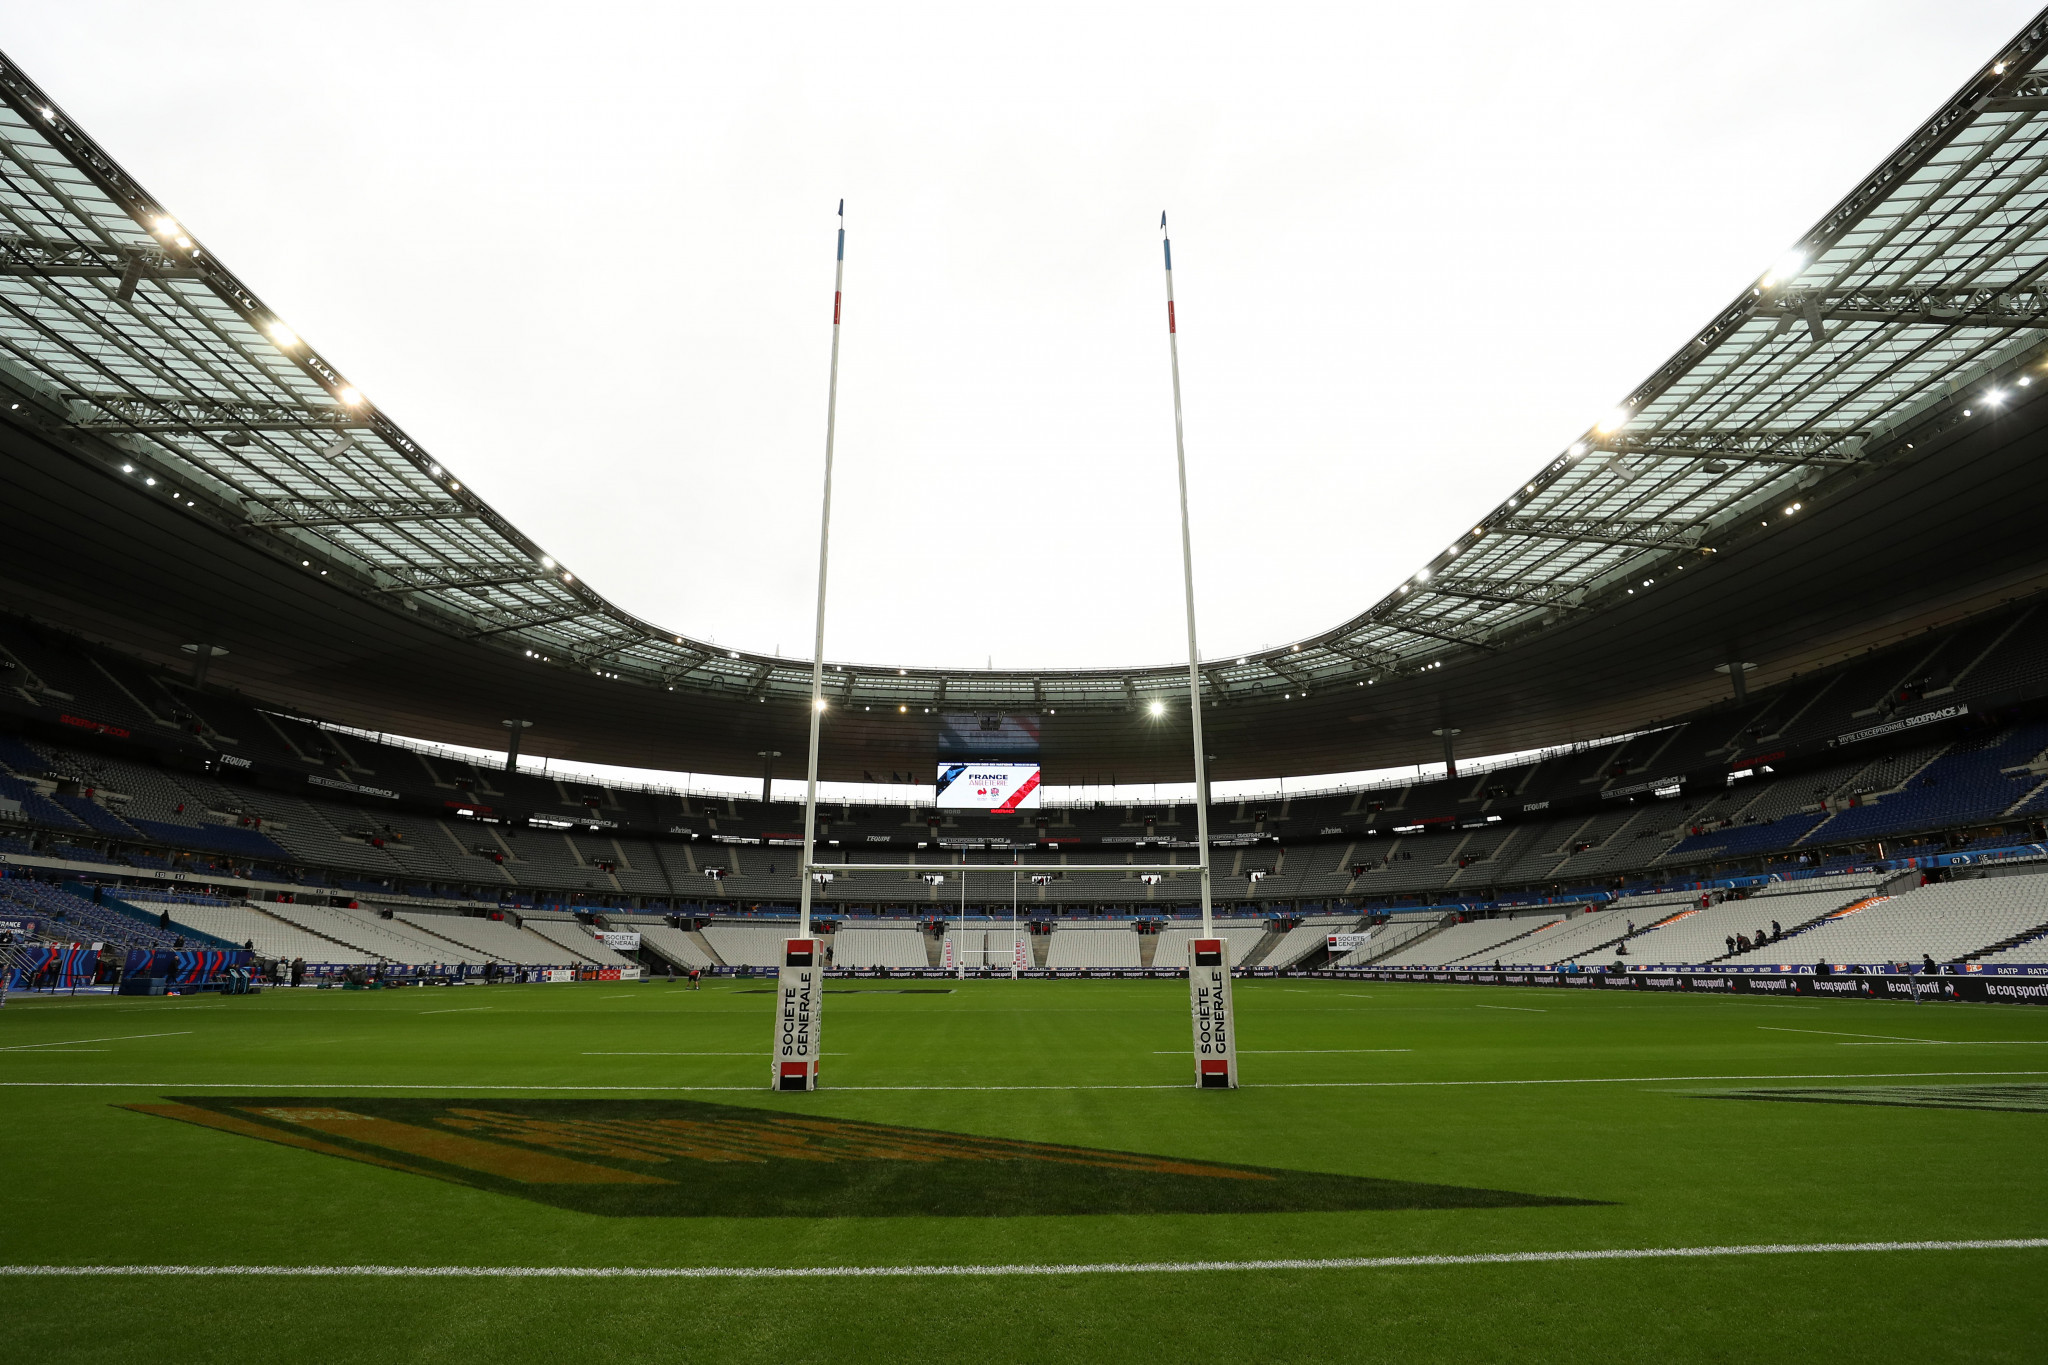 Stade de France expected to become COVID-19 vaccination centre in April